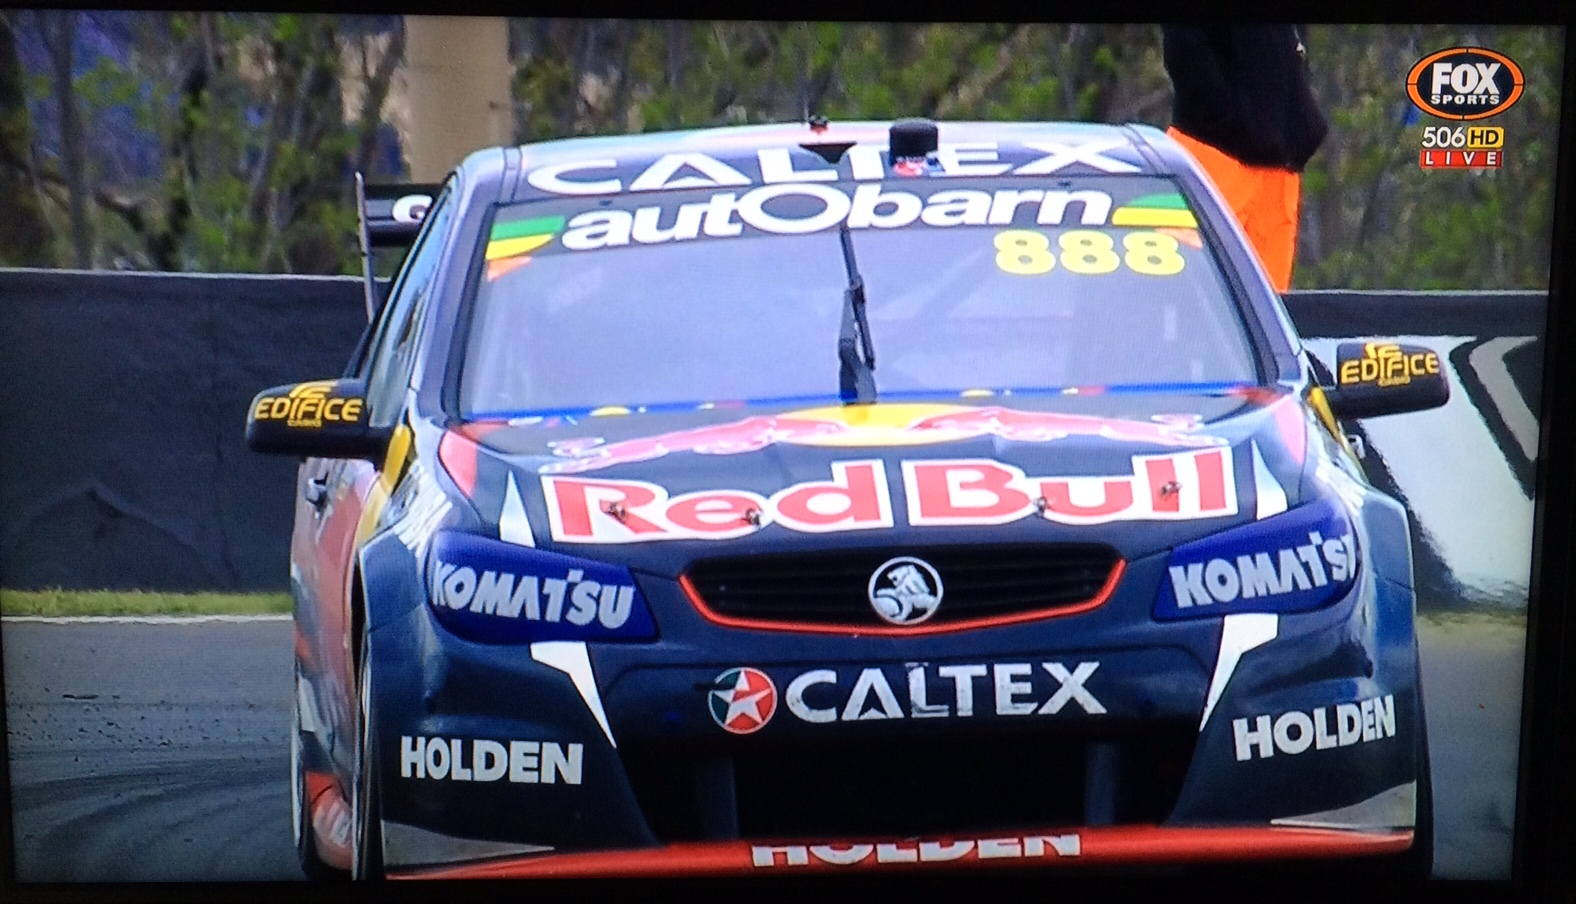 Winning 888 Commodore, 2015 Bathurst 1000, driven by Craig Lowndes and Steven Richards